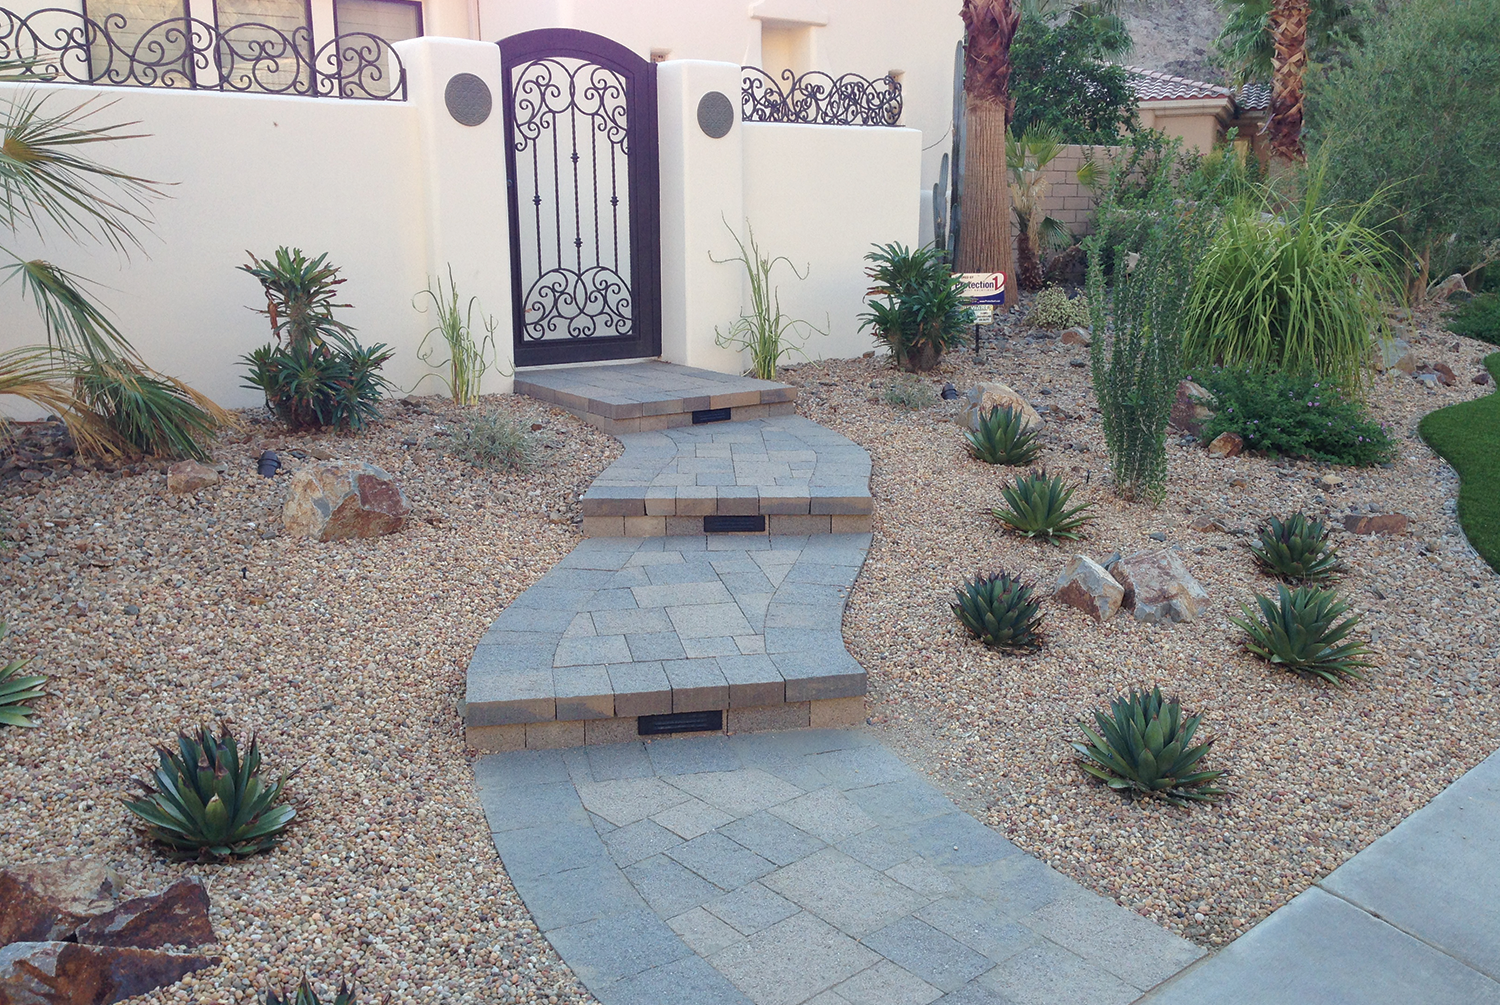 Remarkable drought tolerant landscape gallery best for Landscape design group